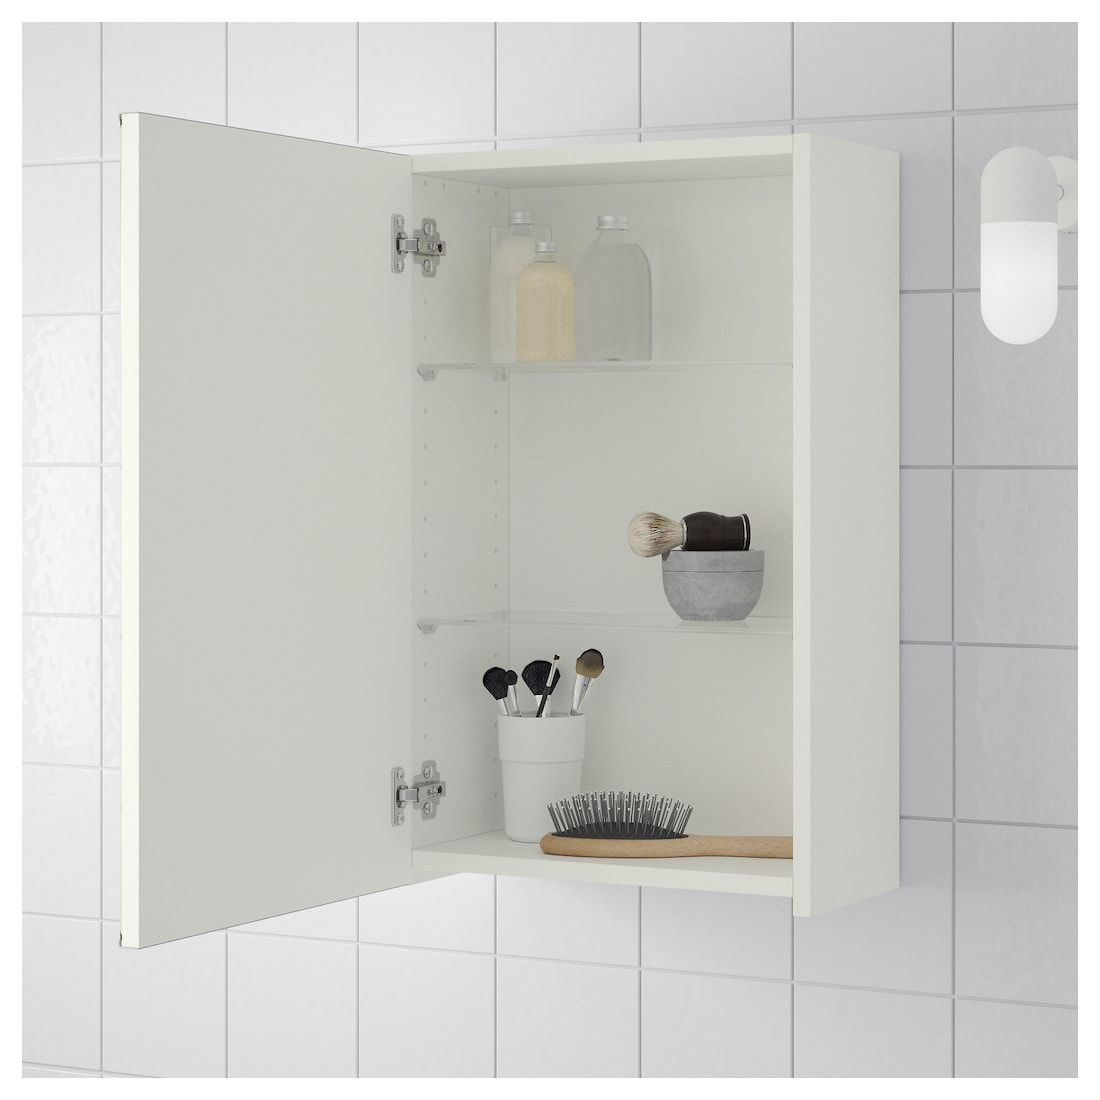 Lillangen Mirror Cabinet With 1 Door White 15 3 4x8 1 4x25 1 4 Ikea Wall Cabinet Mirror Cabinets Bathroom Wall Storage